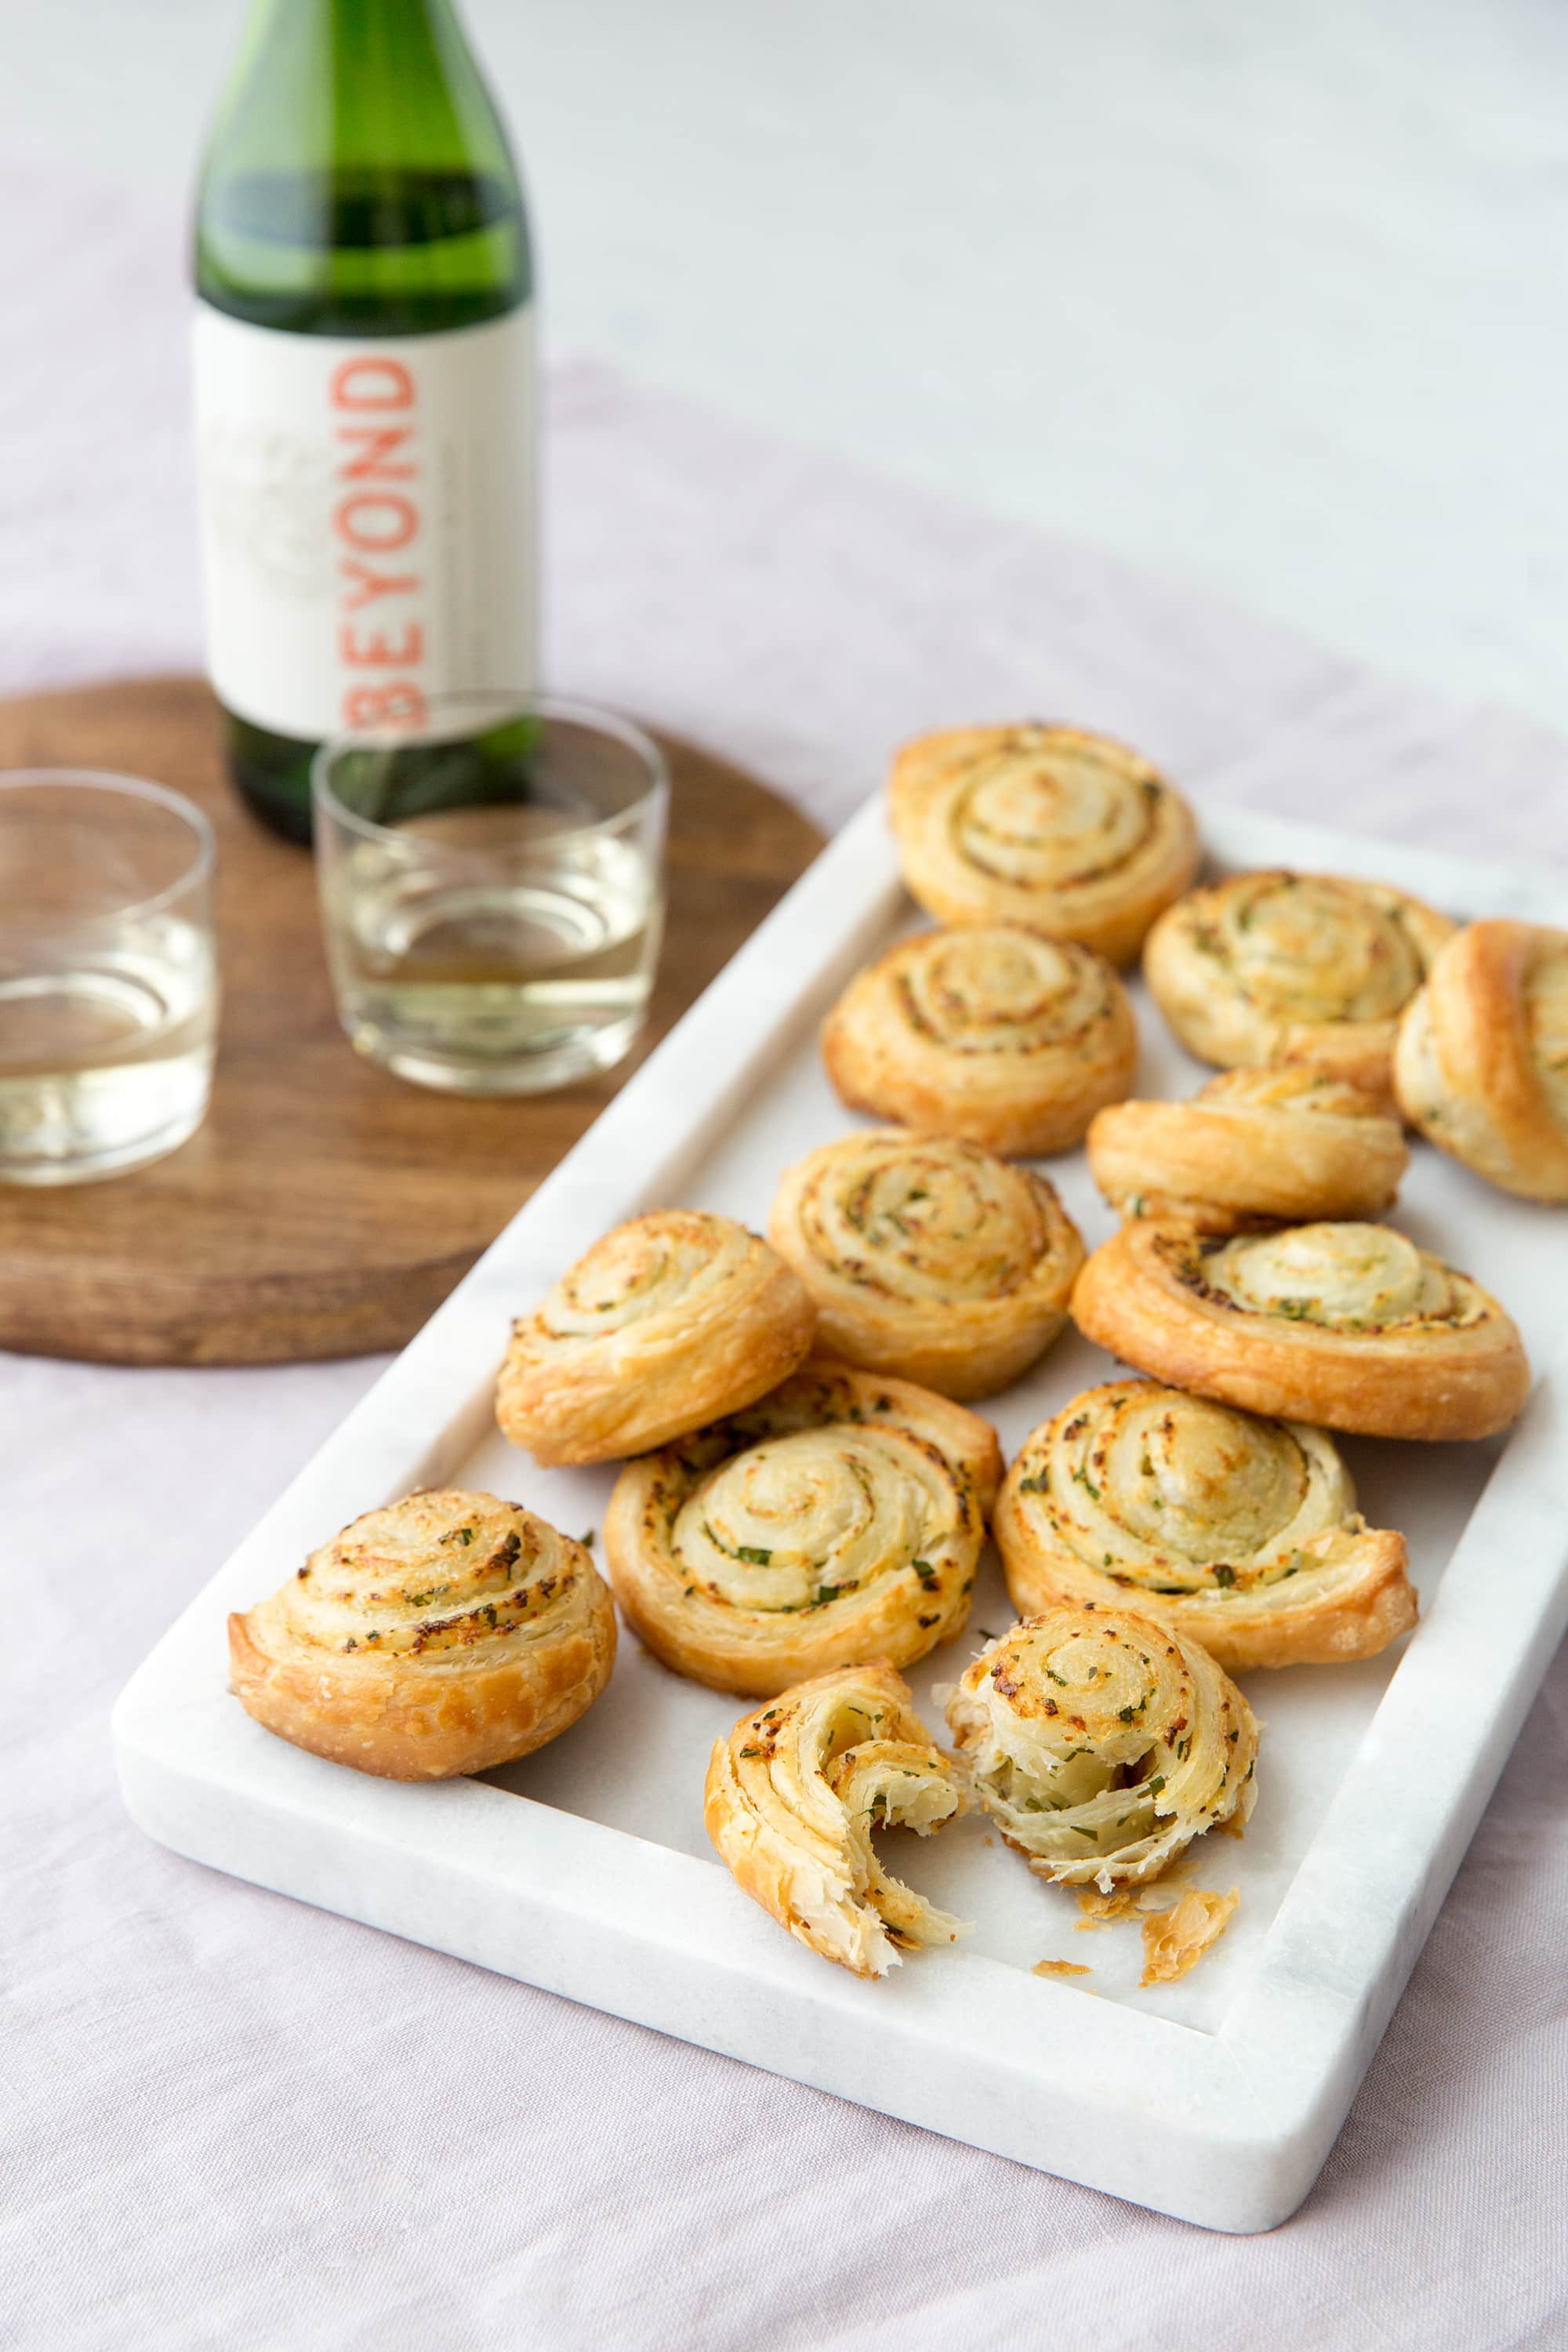 10 Quick Appetizers for a Last-Minute Happy Hour